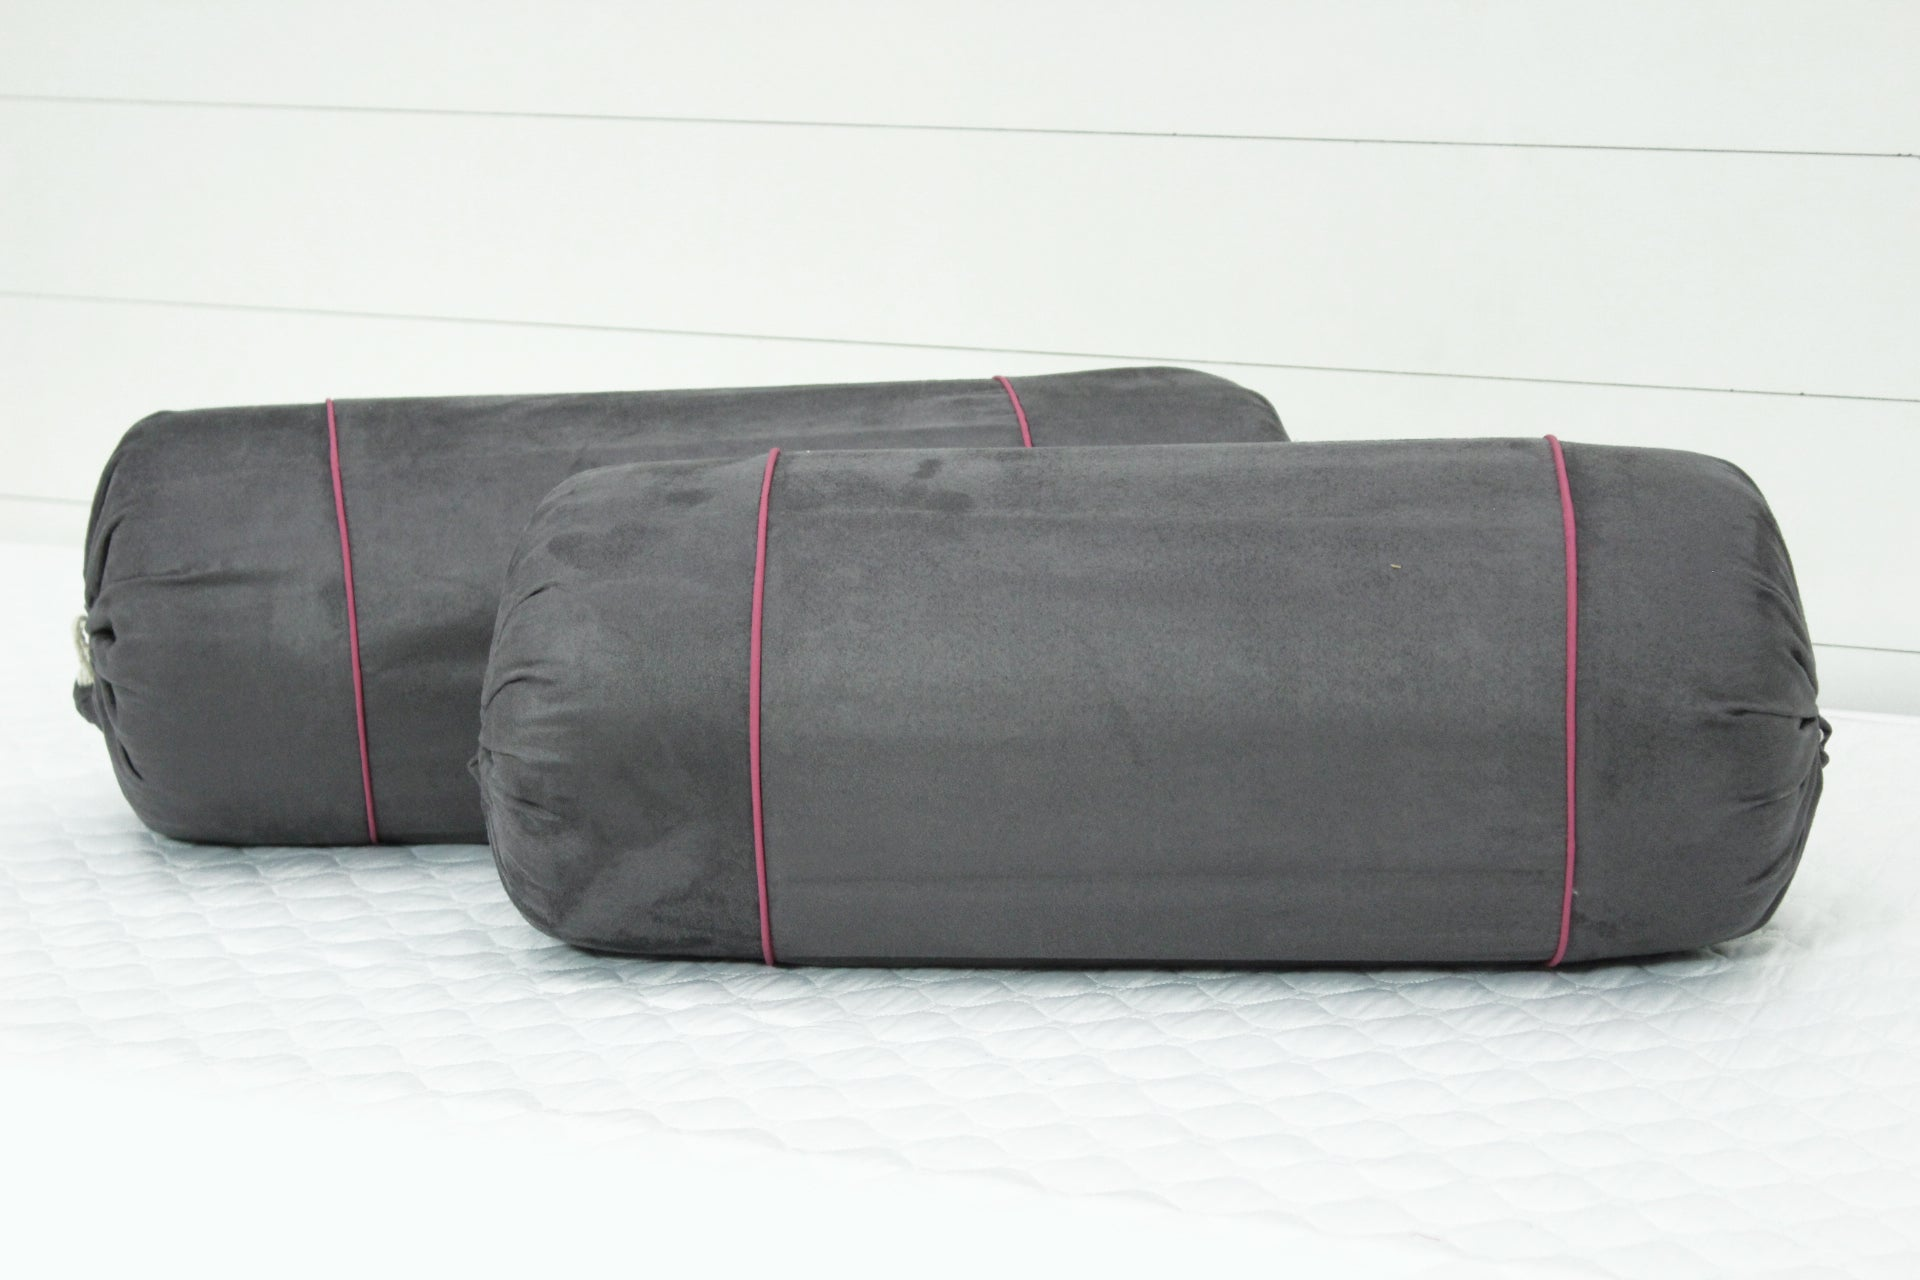 AURAVE Imported Suede Polyester Velvety 2 Pcs Bolster Covers - Grey